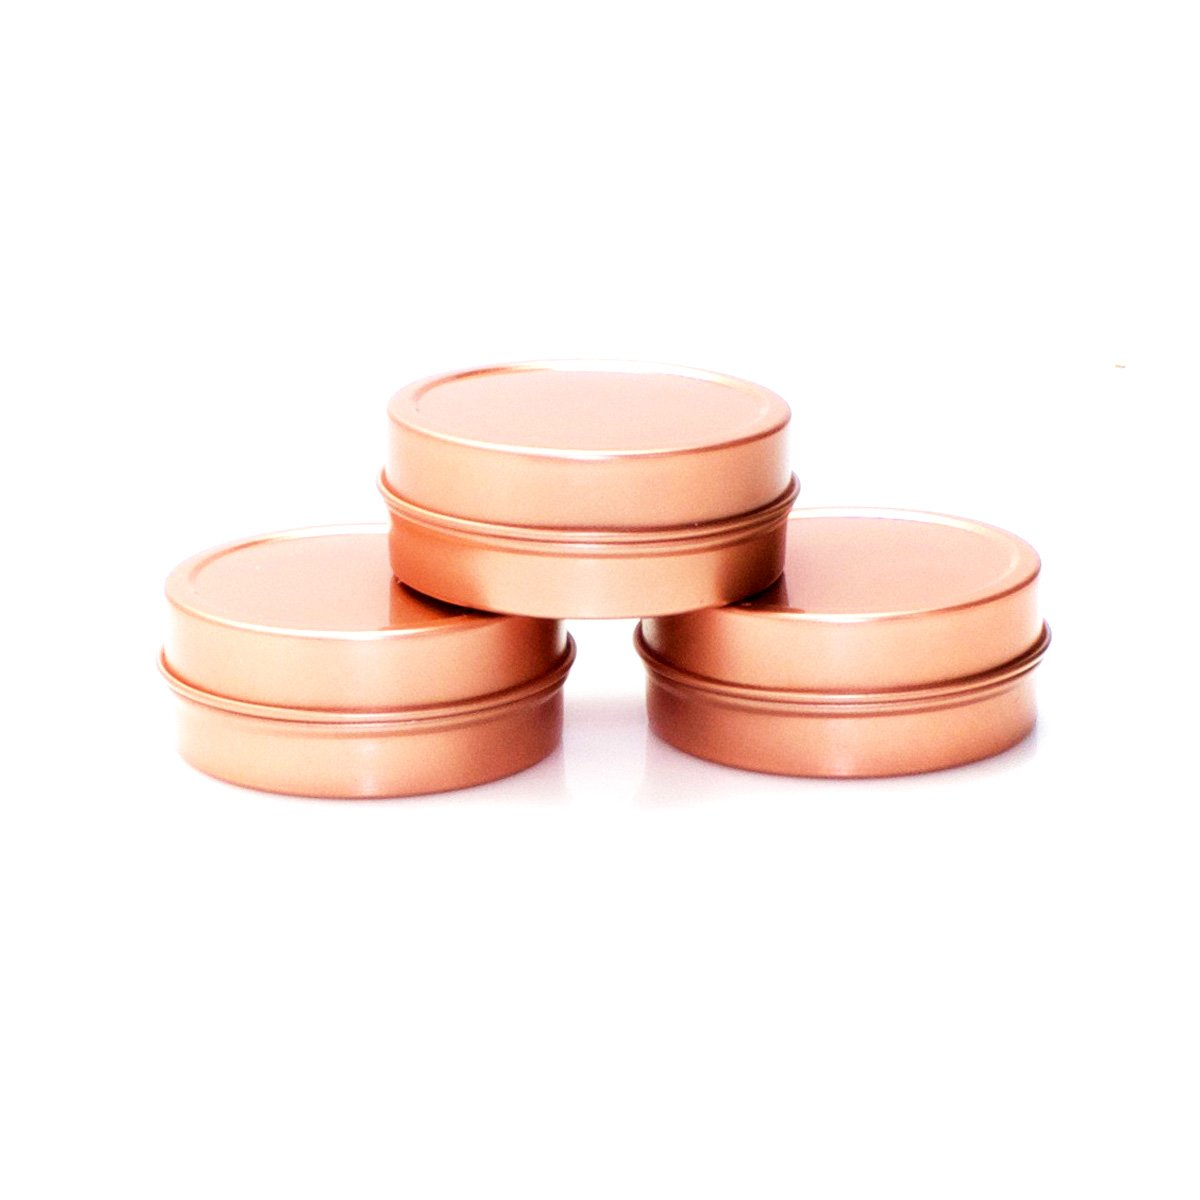 Mimi Pack ALL Shallow Solid Slip Top Tins (8 oz, Rose Gold) by Mimi Pack (Image #2)